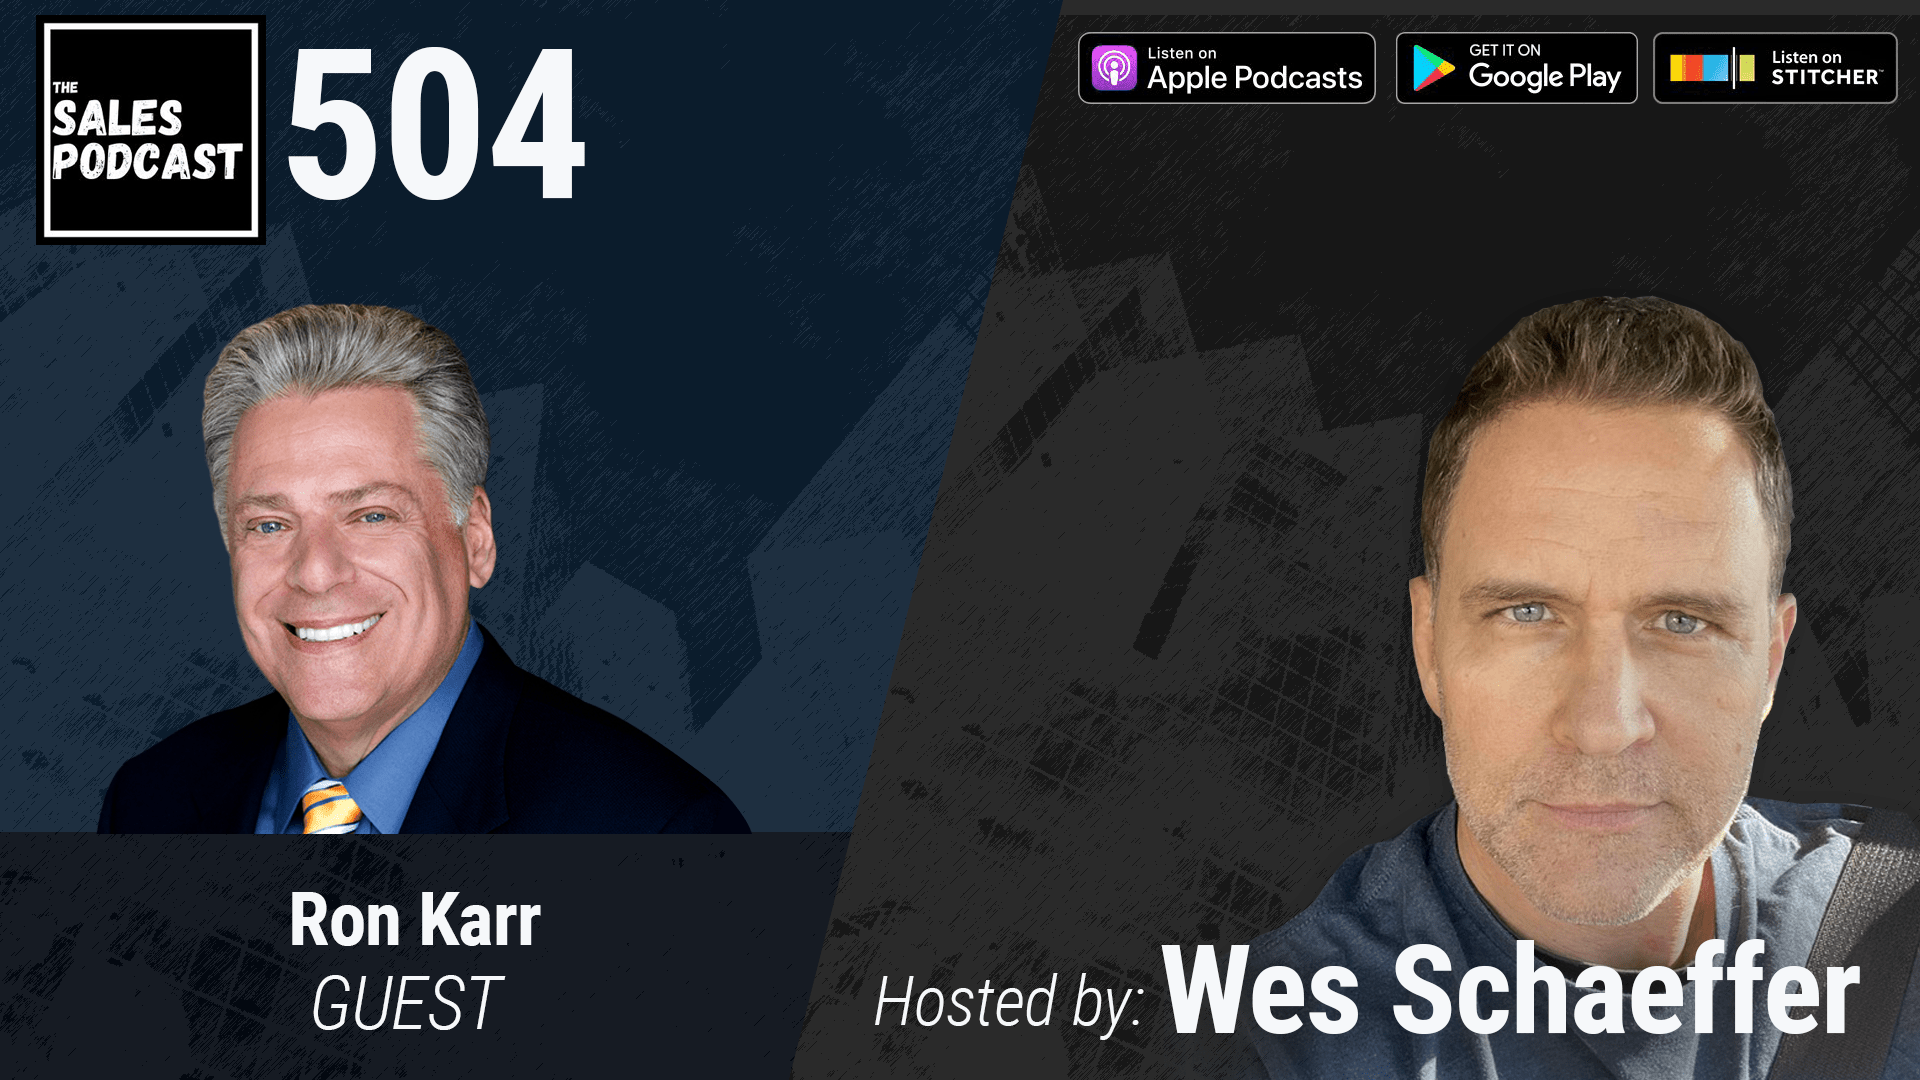 Ron Karr is an expert in leadership and shares his tips on how to create a velocity mindset and win with Wes Schaeffer, The Sales Whisperer®.